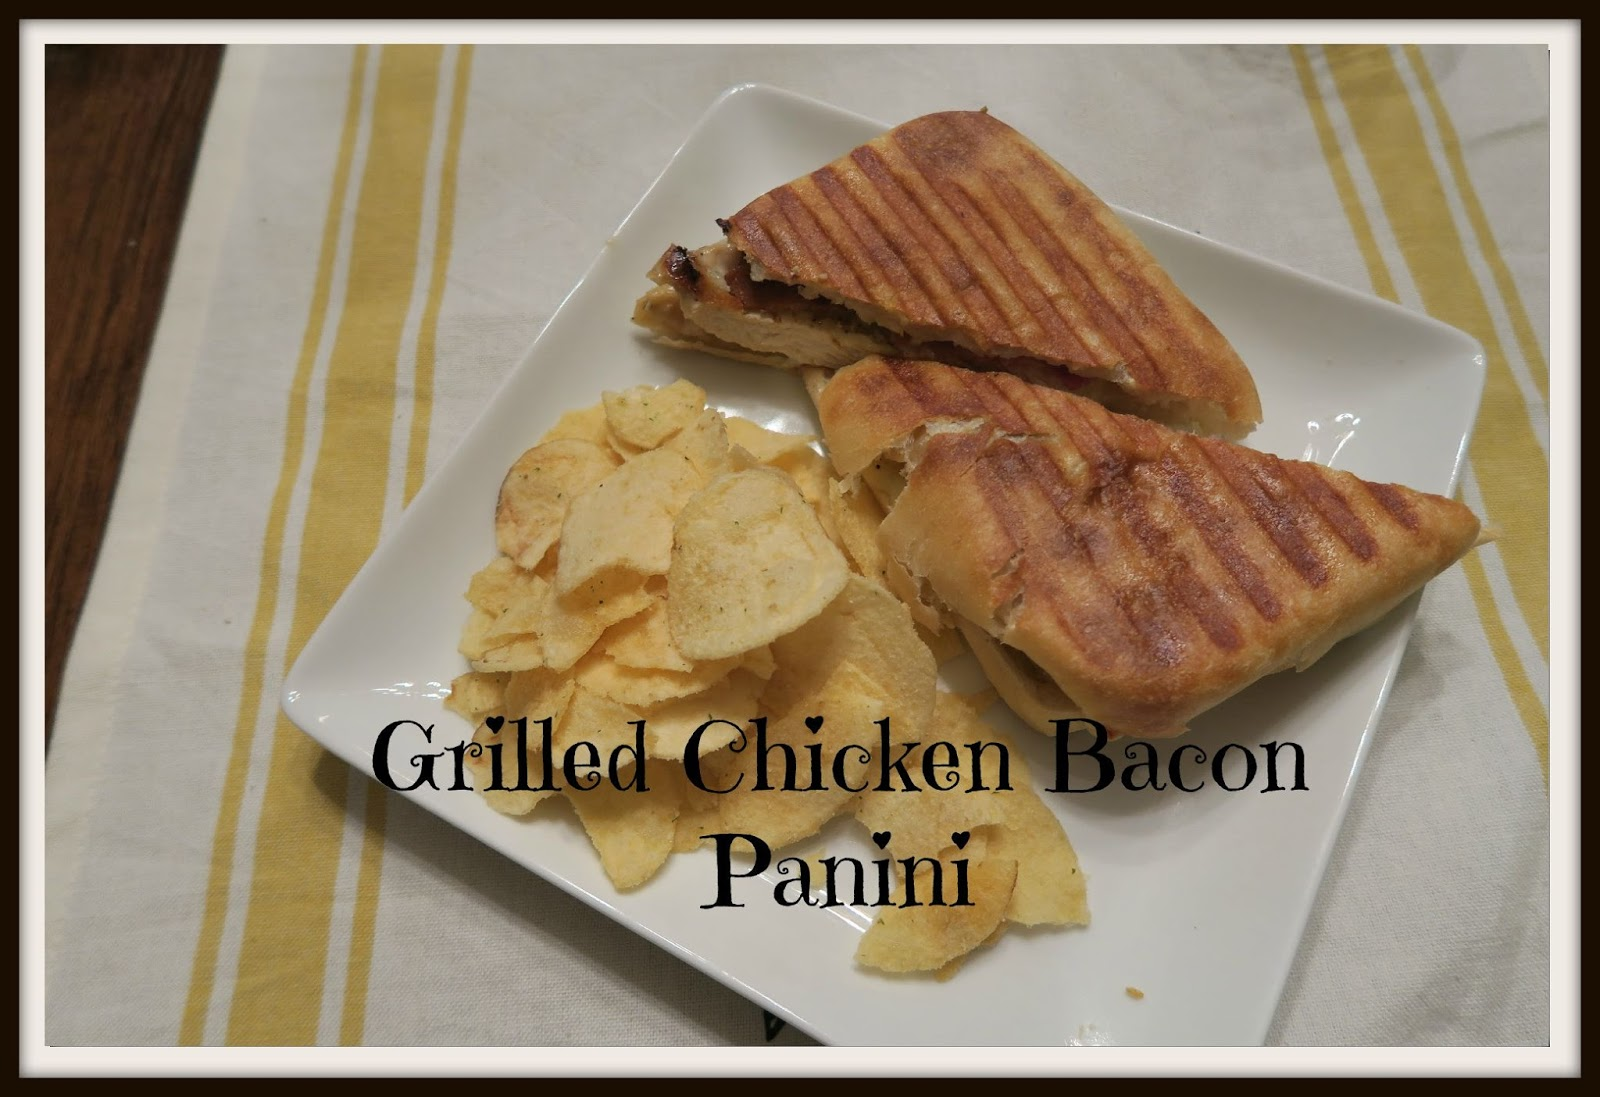 Mrs. Erica's Blog: Grilled Chicken Bacon Panini Sandwich Recipe